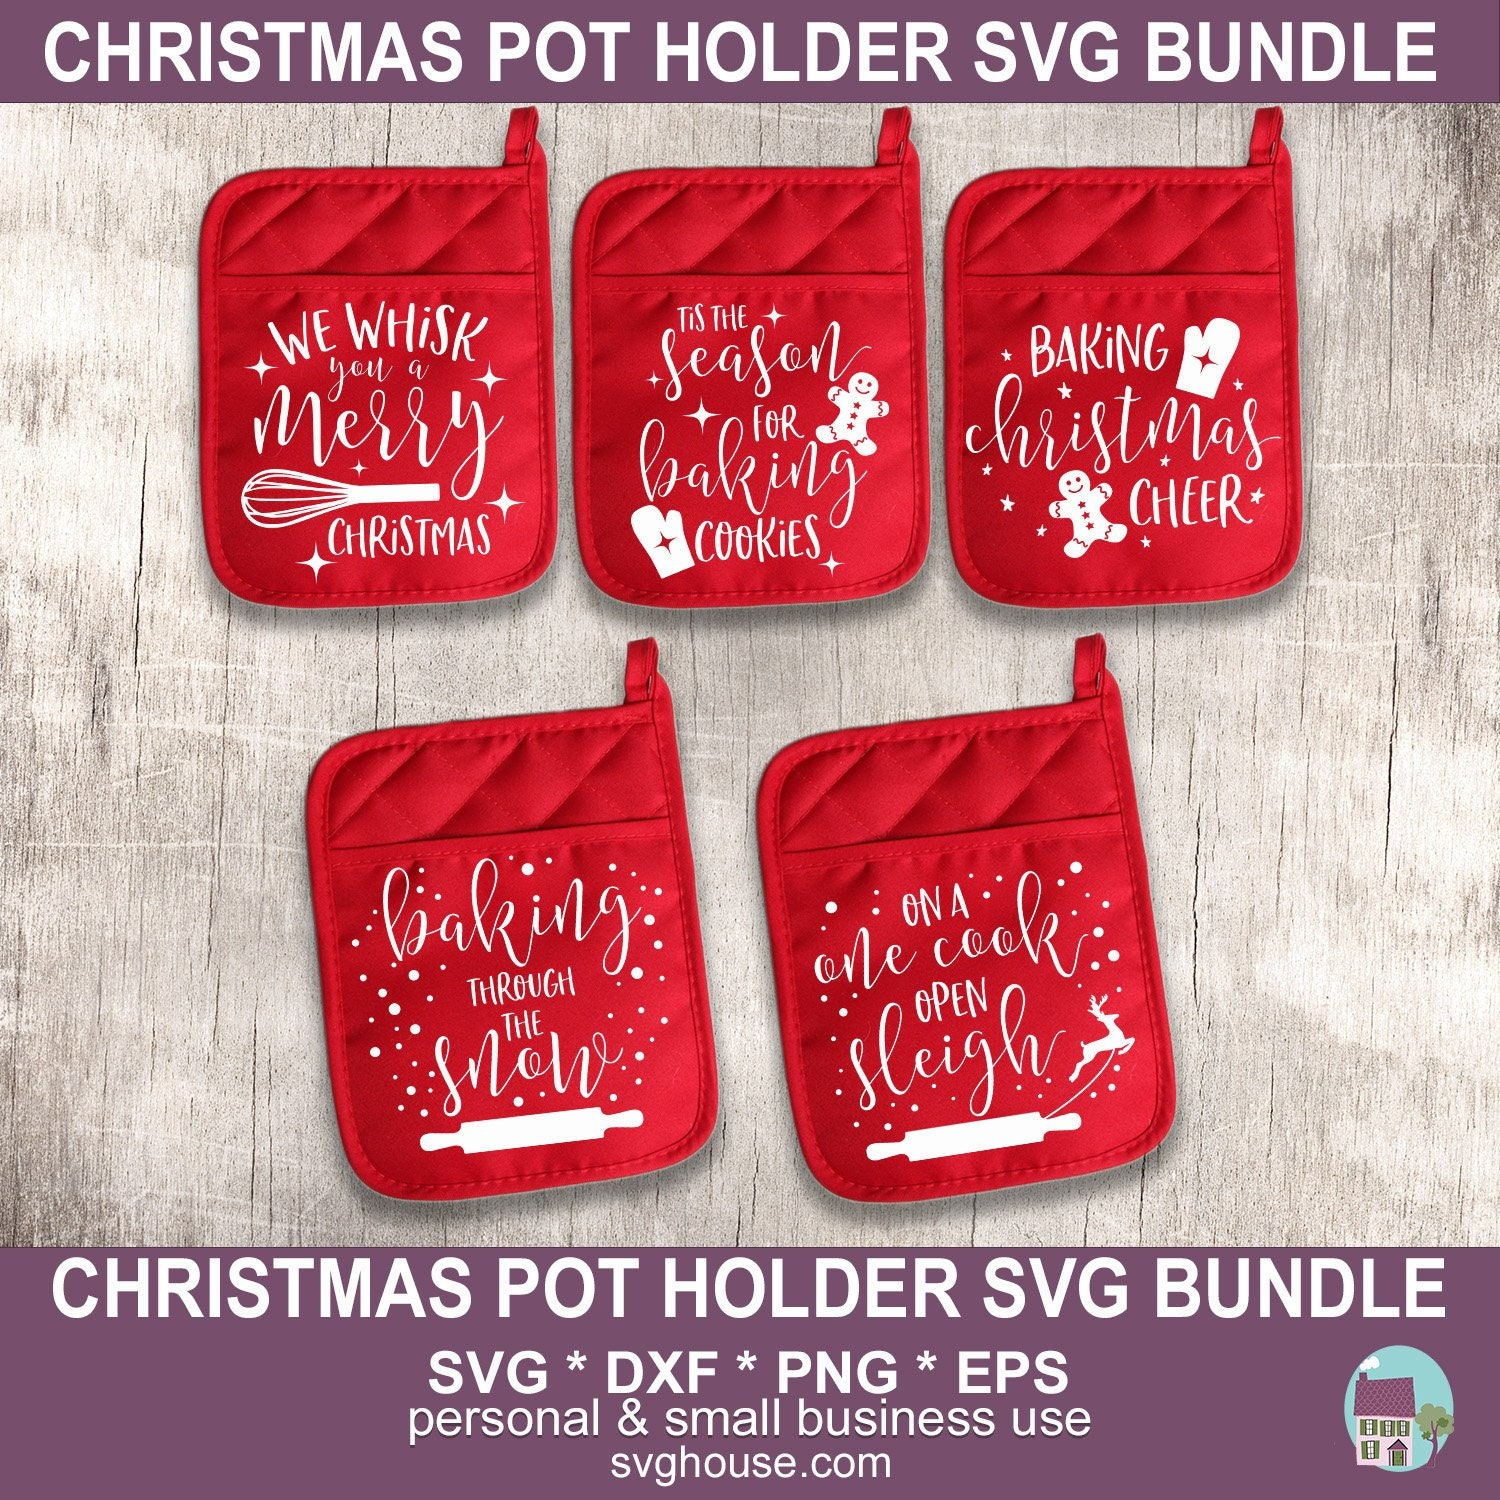 Pot Holder Svg: Christmas Pot Holder SVG Bundle Vector Cut Files For